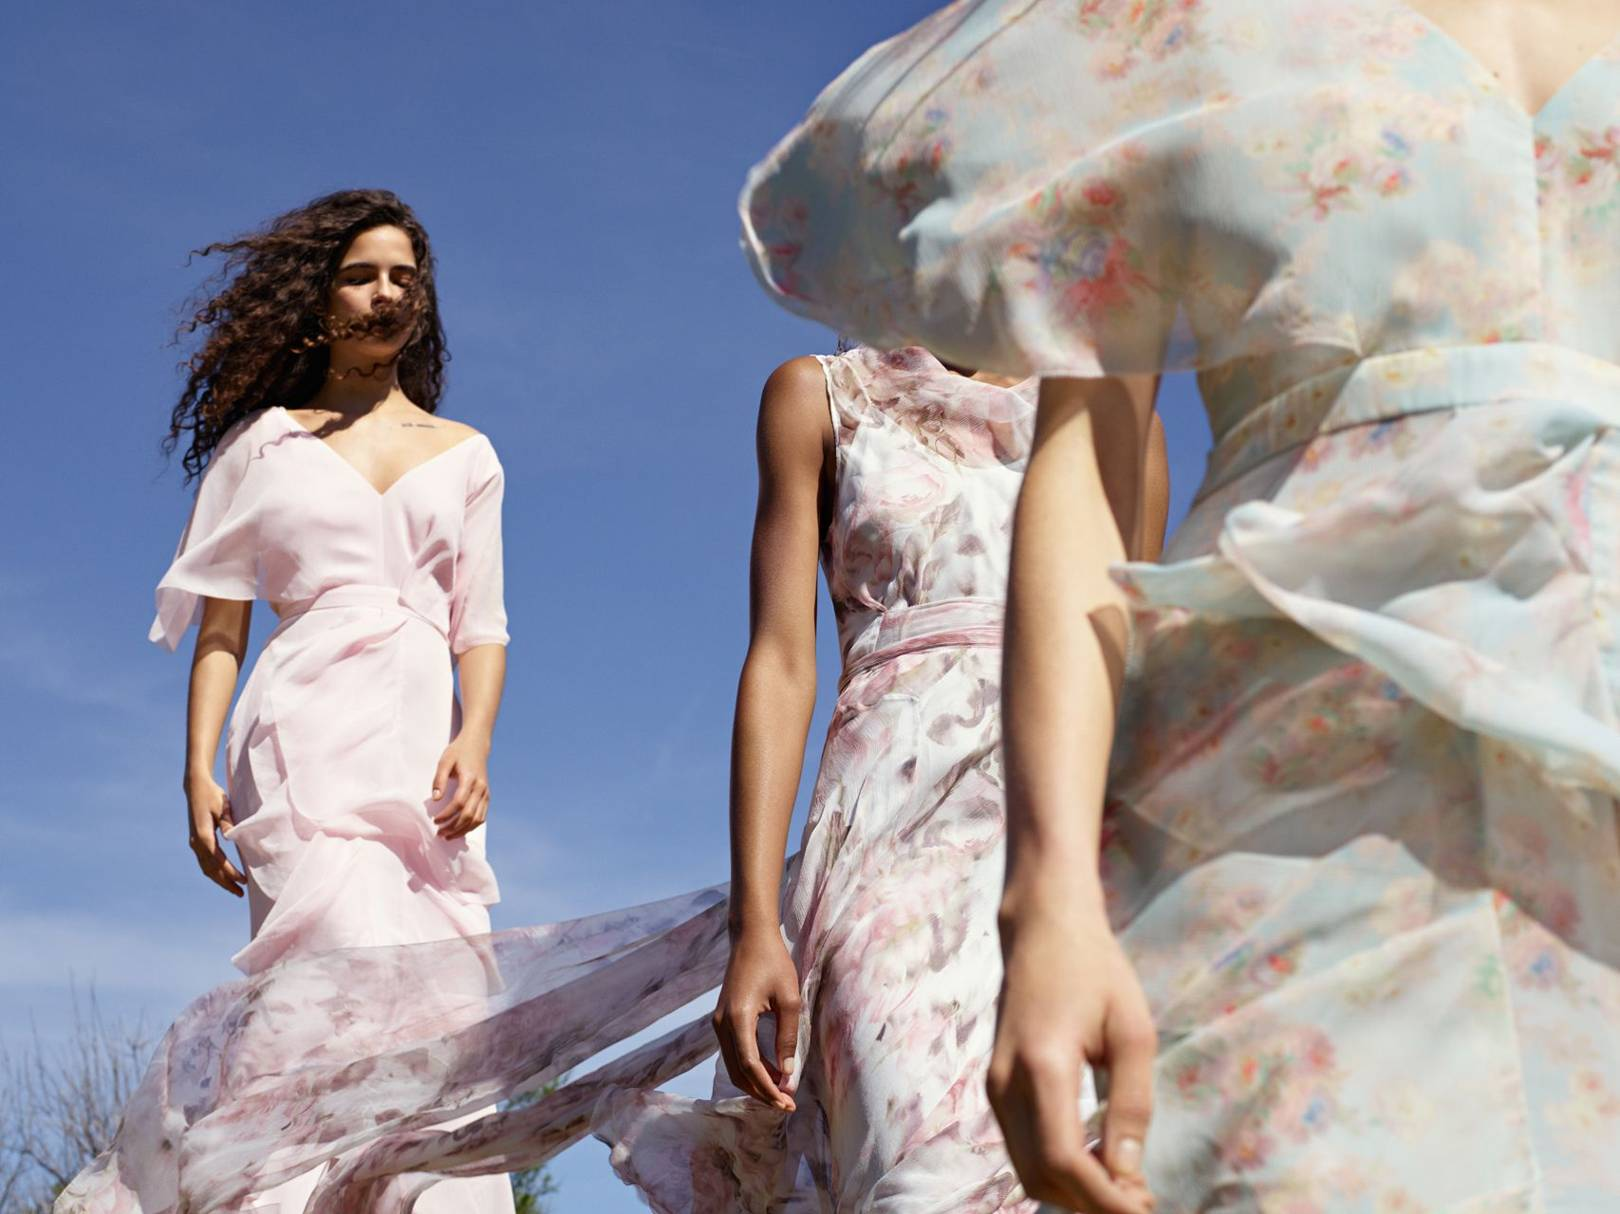 aef0da7befe Topshop Launches Bridal Collection